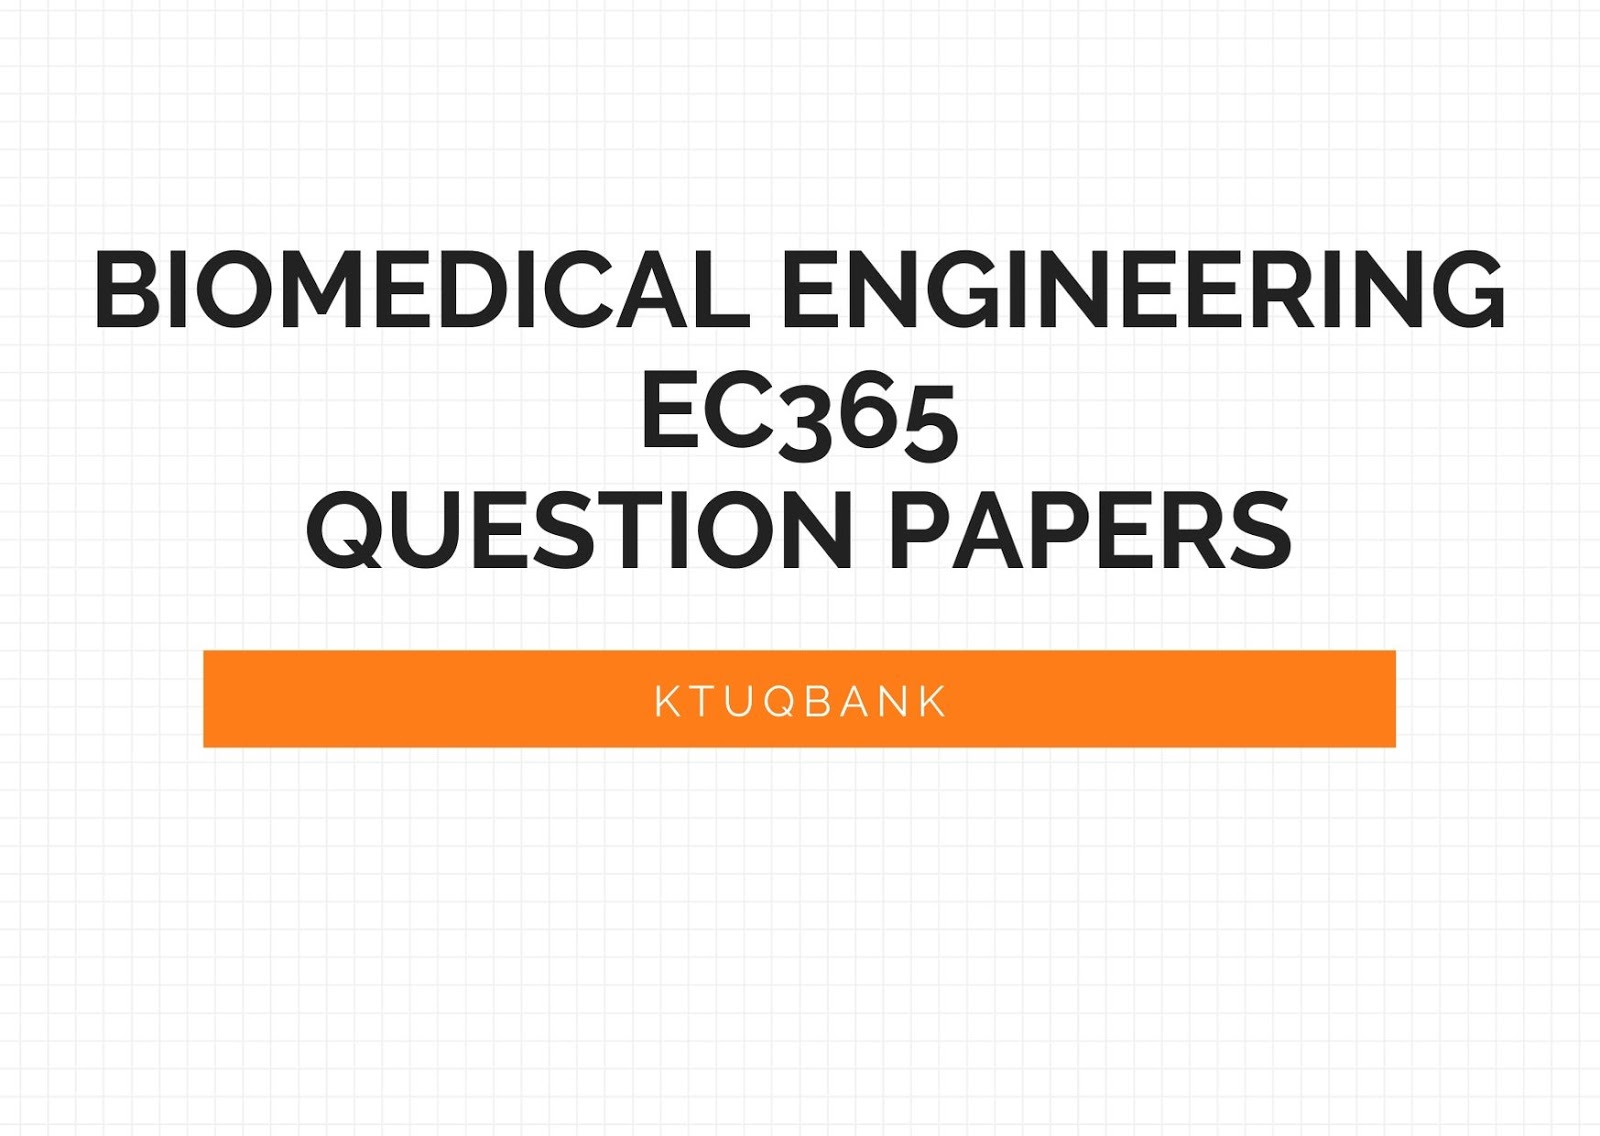 Biomedical Engineering | EC365 | Question Papers (2015 batch)